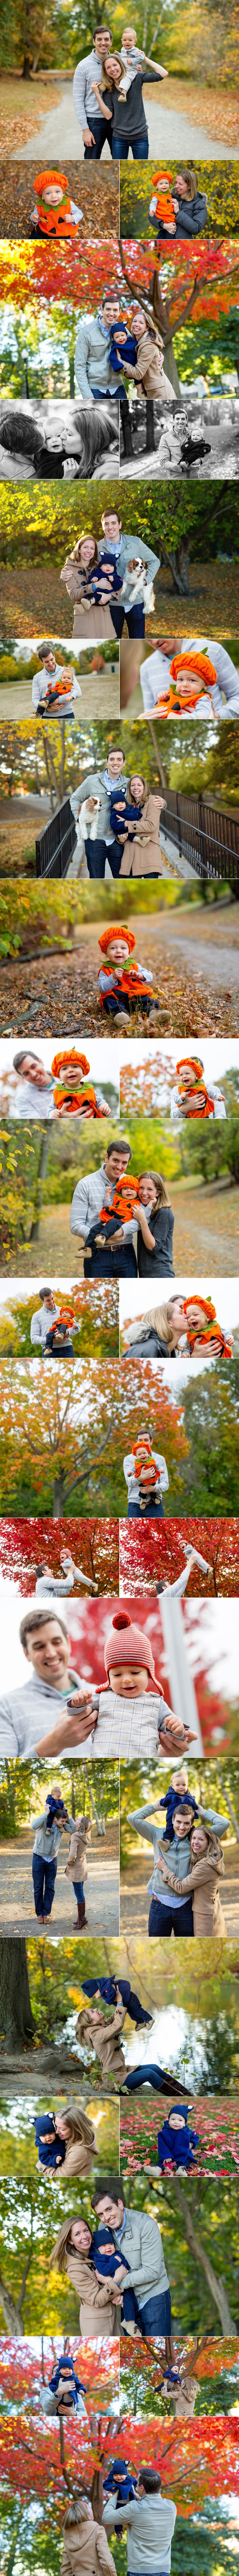 Boston baby photographer captures outdoor images of a baby using natural light and lots of color.